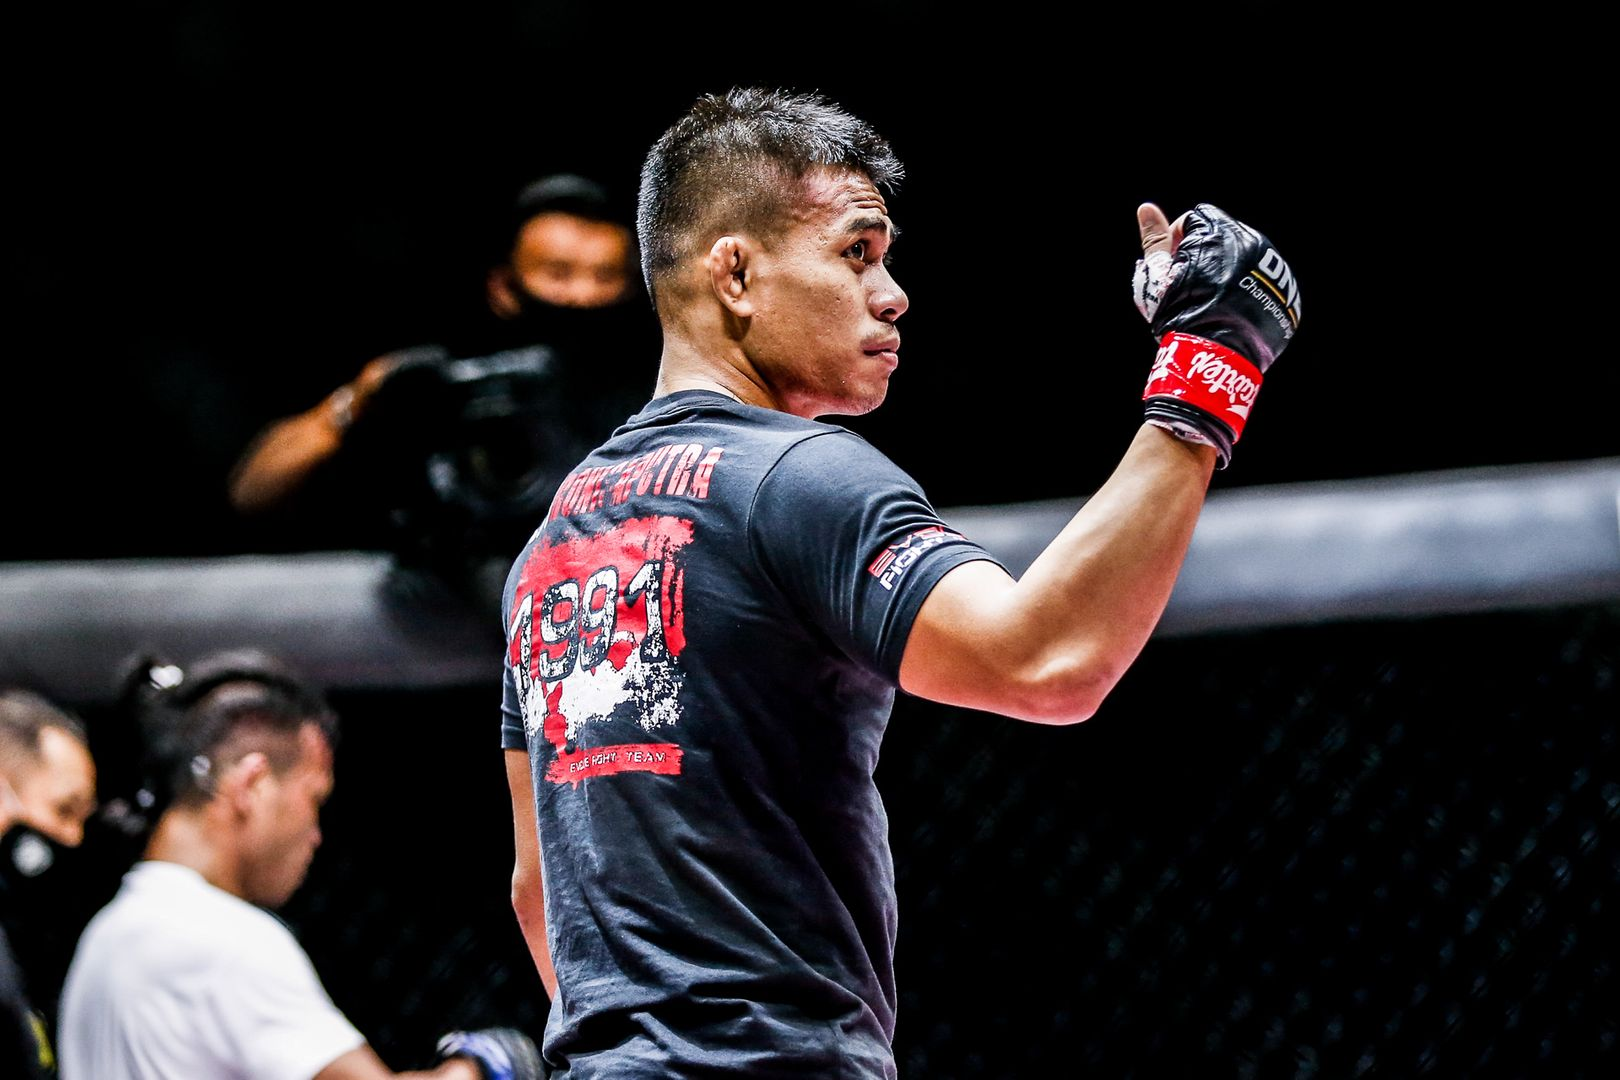 Indonesia MMA star Eko Roni Saputra fights Ramon Gonzales at ONE: INSIDE THE MATRIX II in Singapore